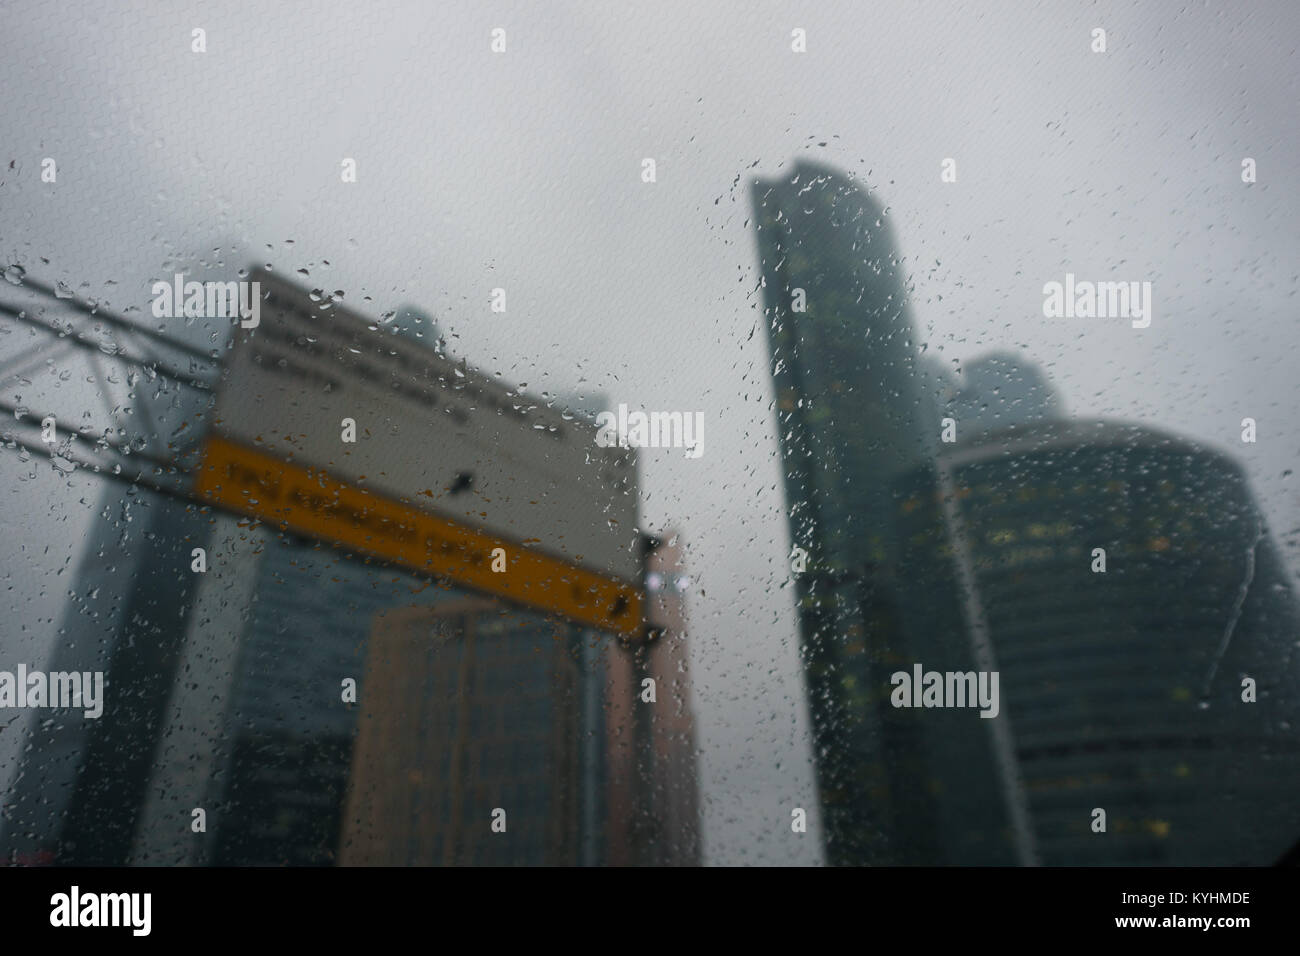 View of city through windshield of car in rain - Stock Image